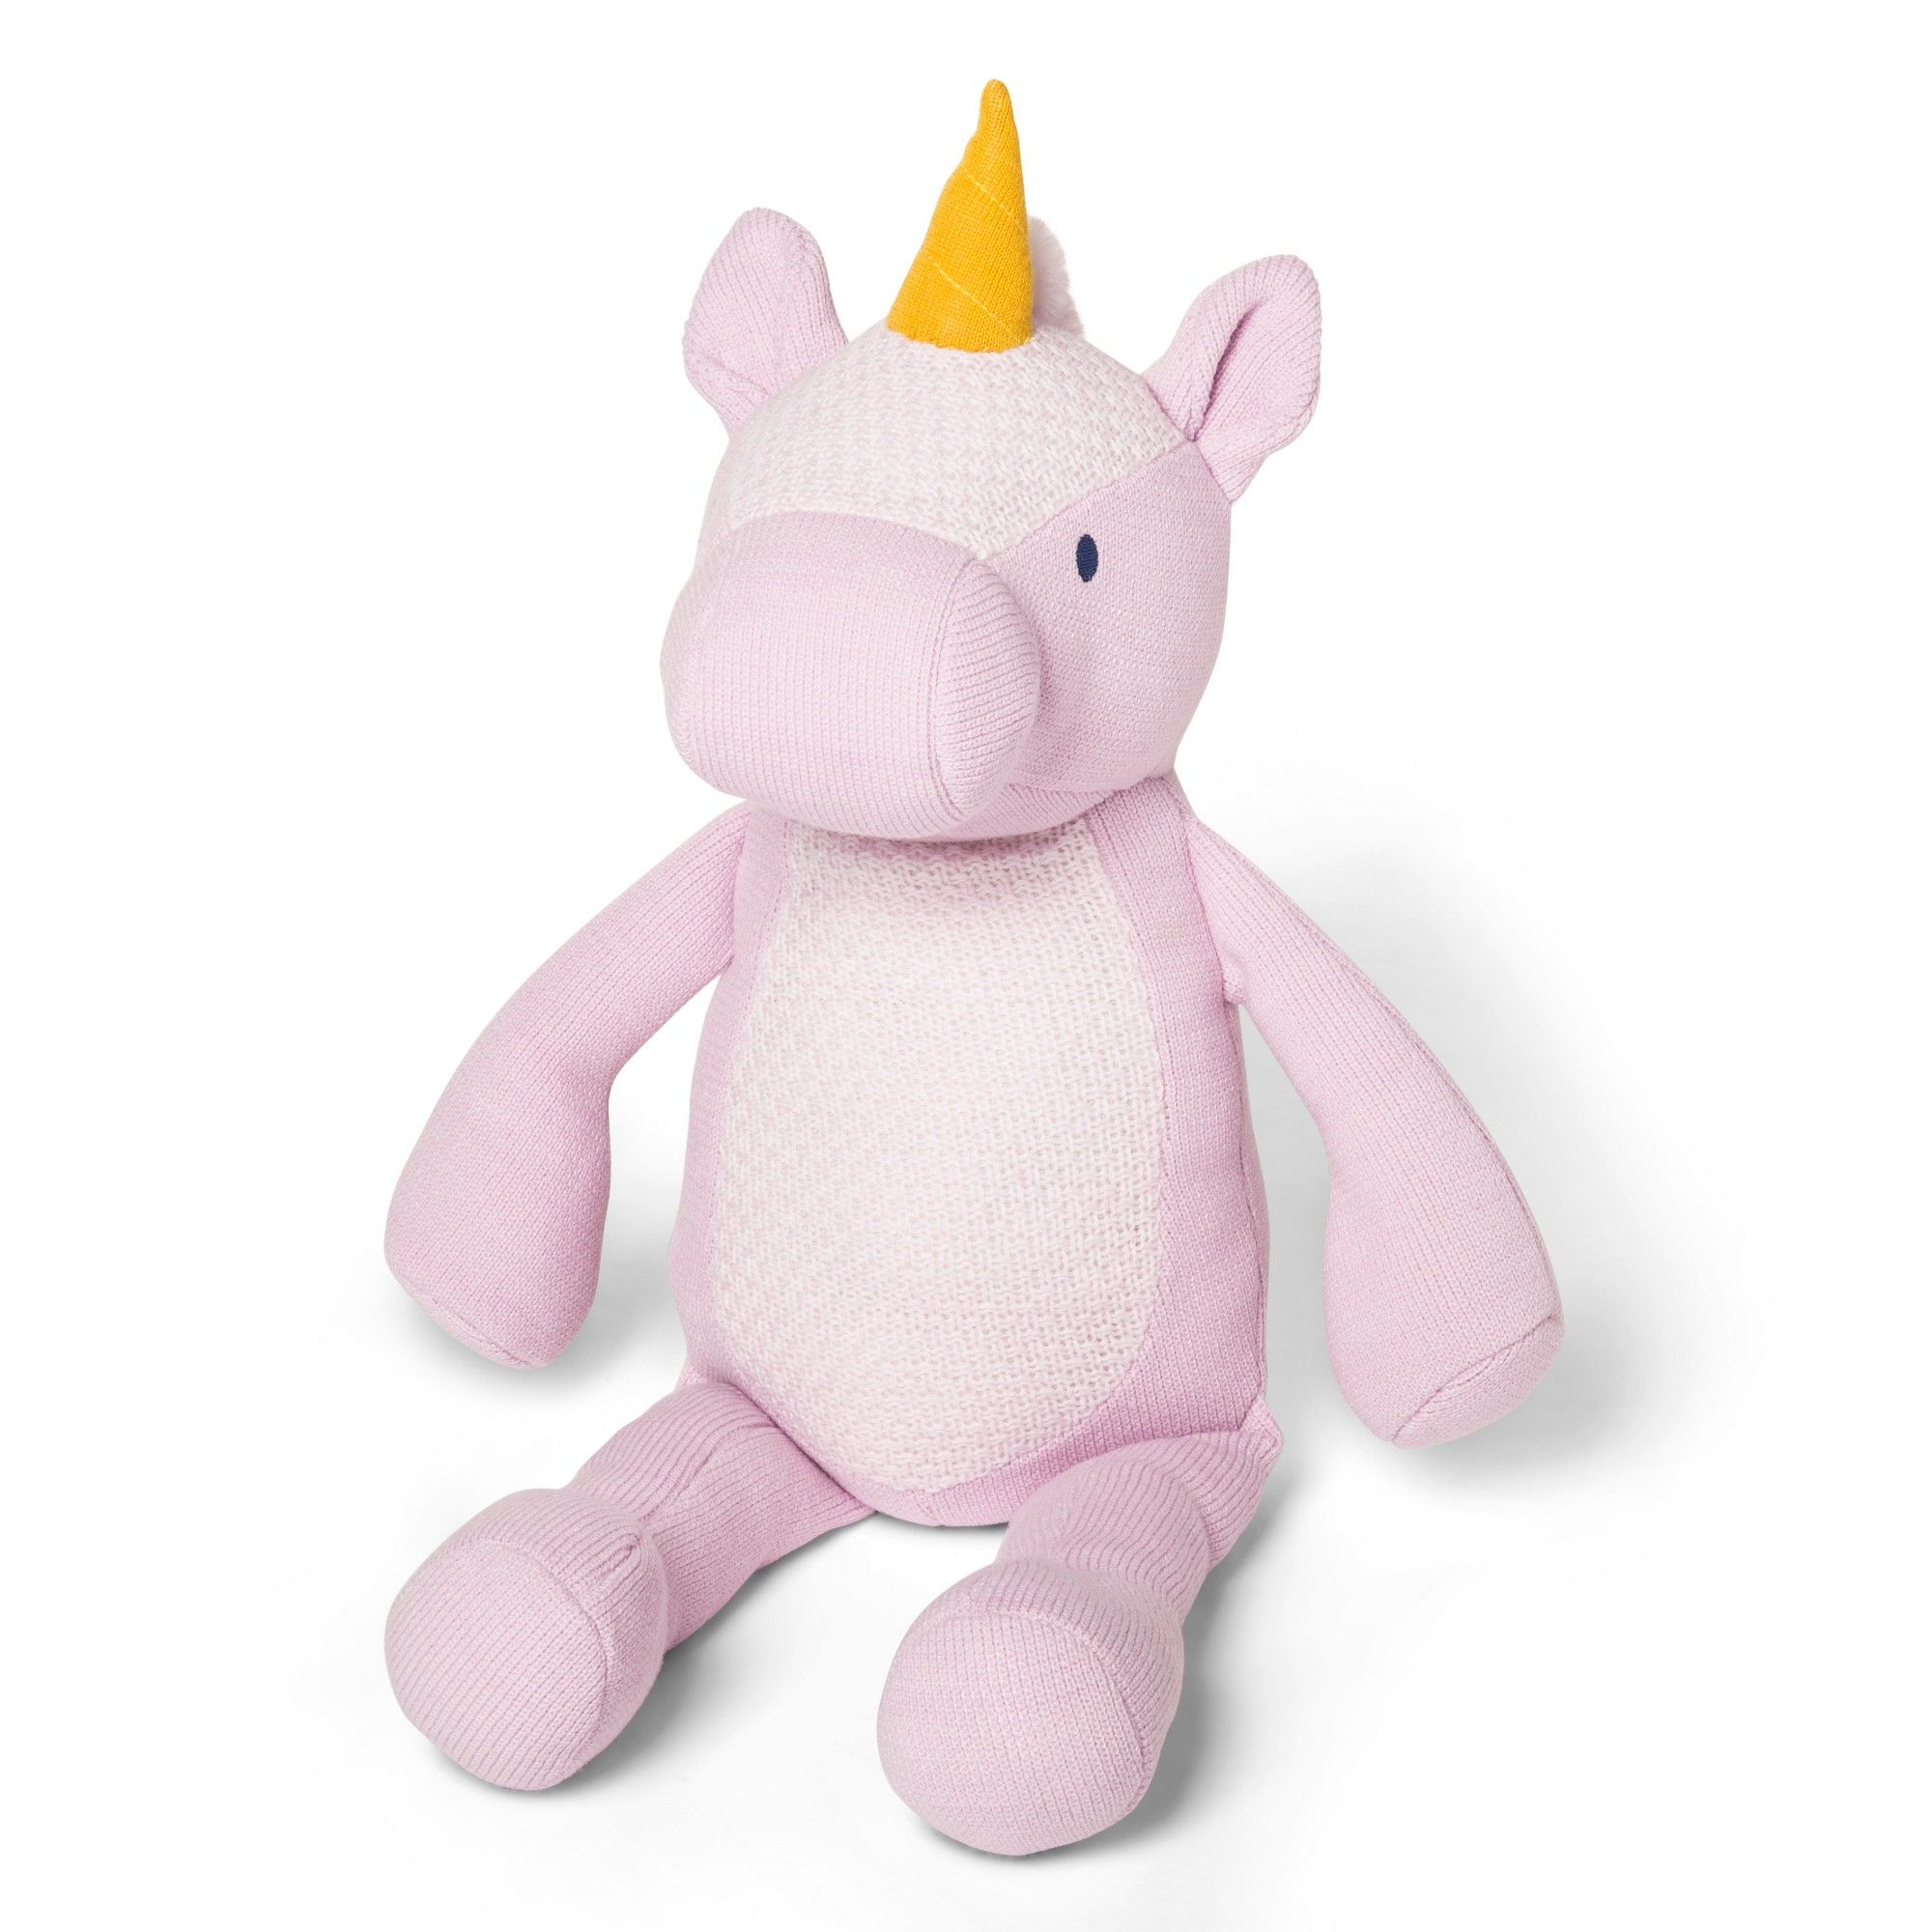 Knit Plush Unicorn Cloud Island Purple in 2019 Plush